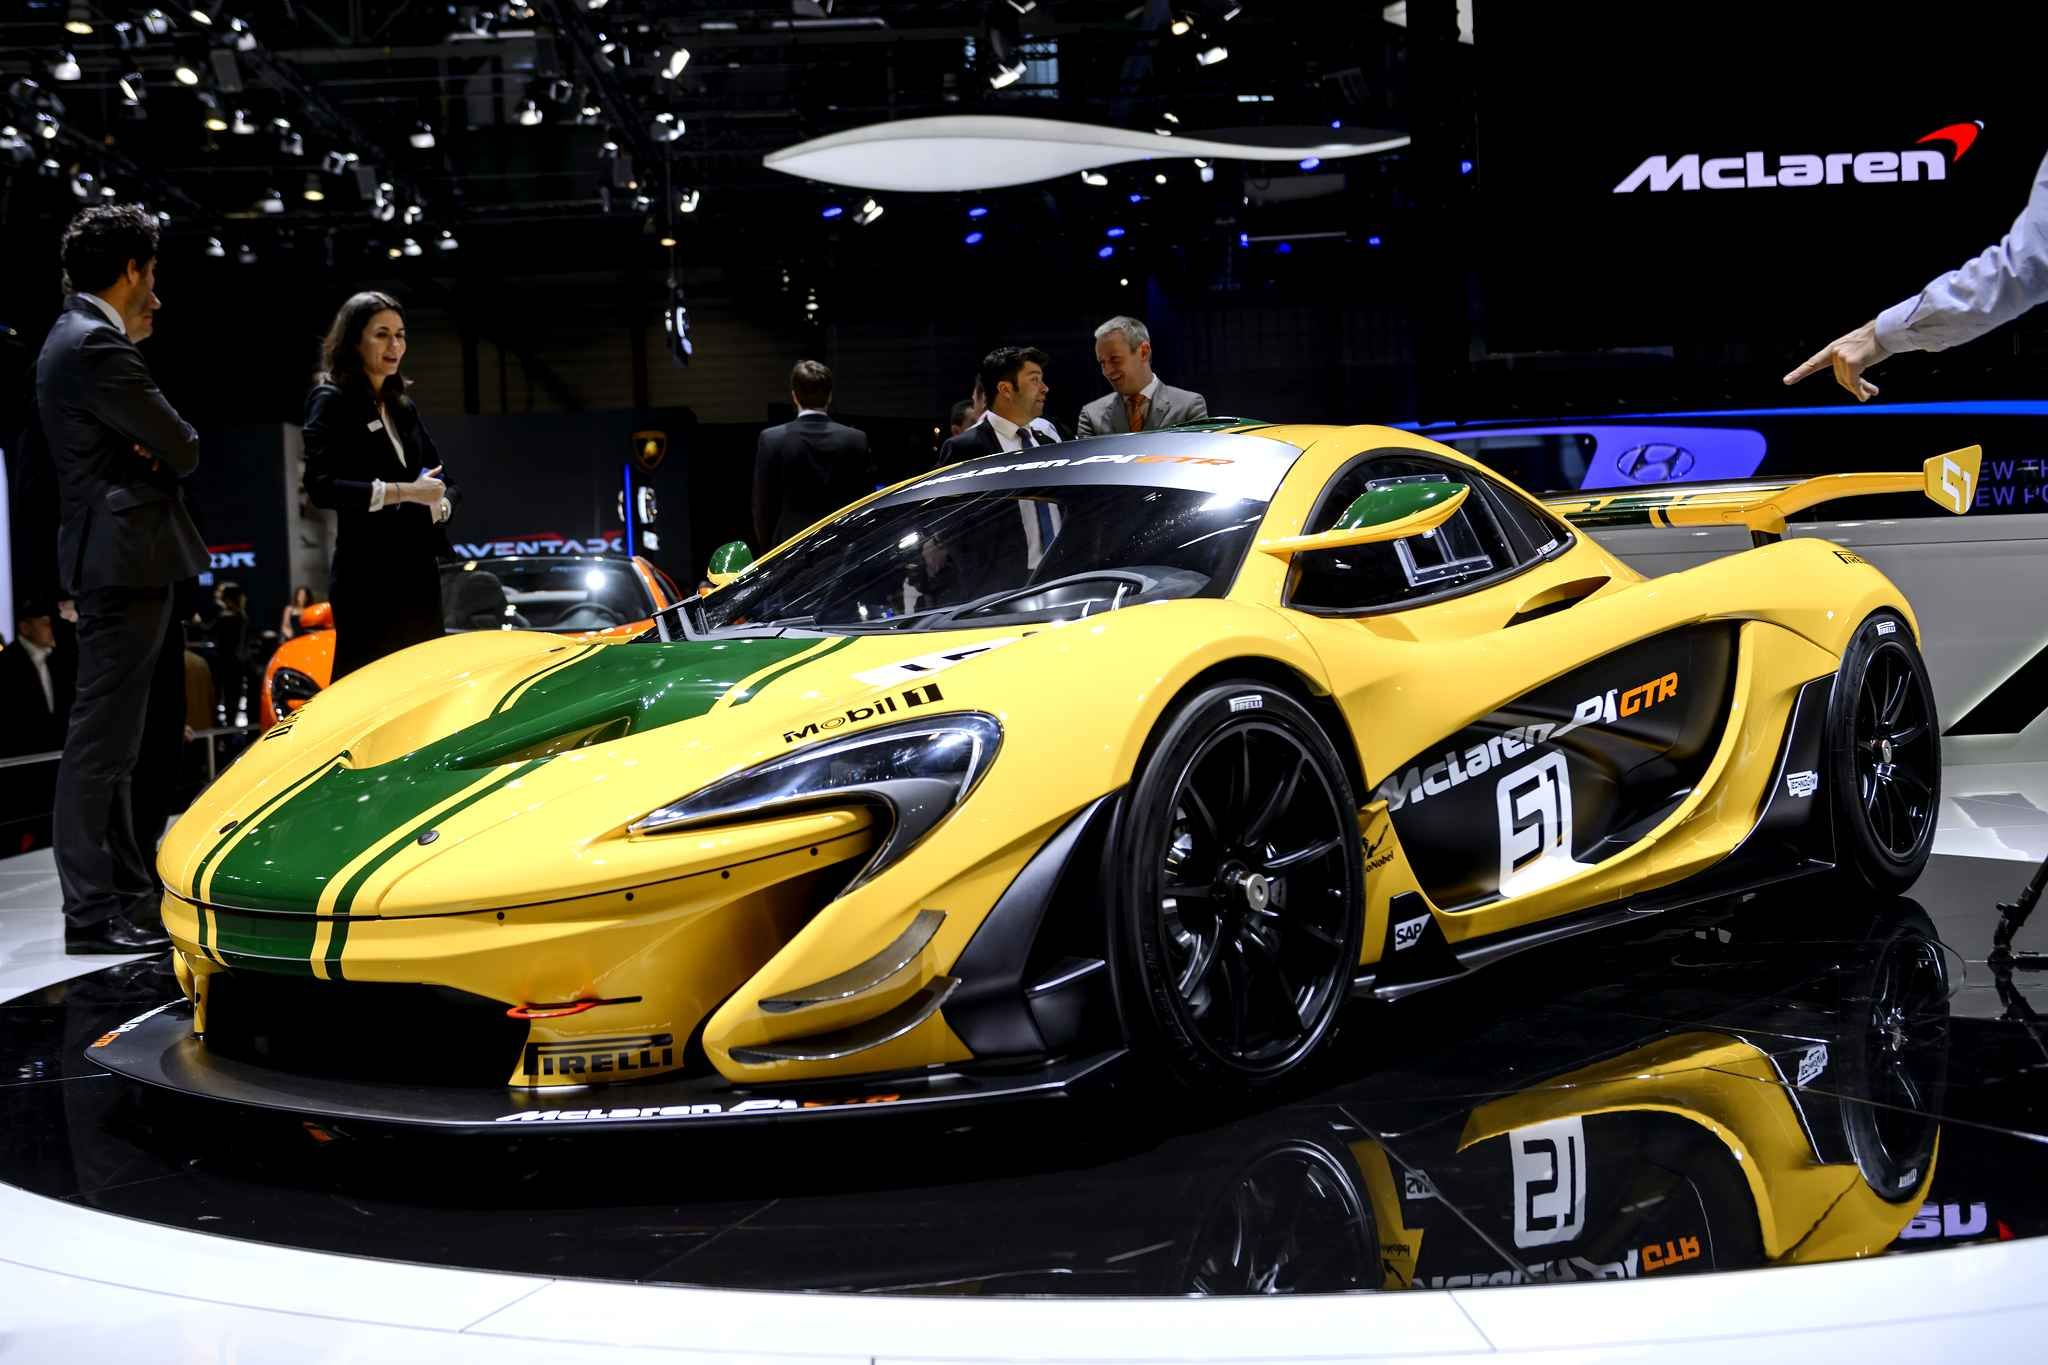 The new McLaren P1 GTR sees the combined power of its V8 3.8 turbo and its electric motor driving it's power to 1,000hp overall instead of previous 916.